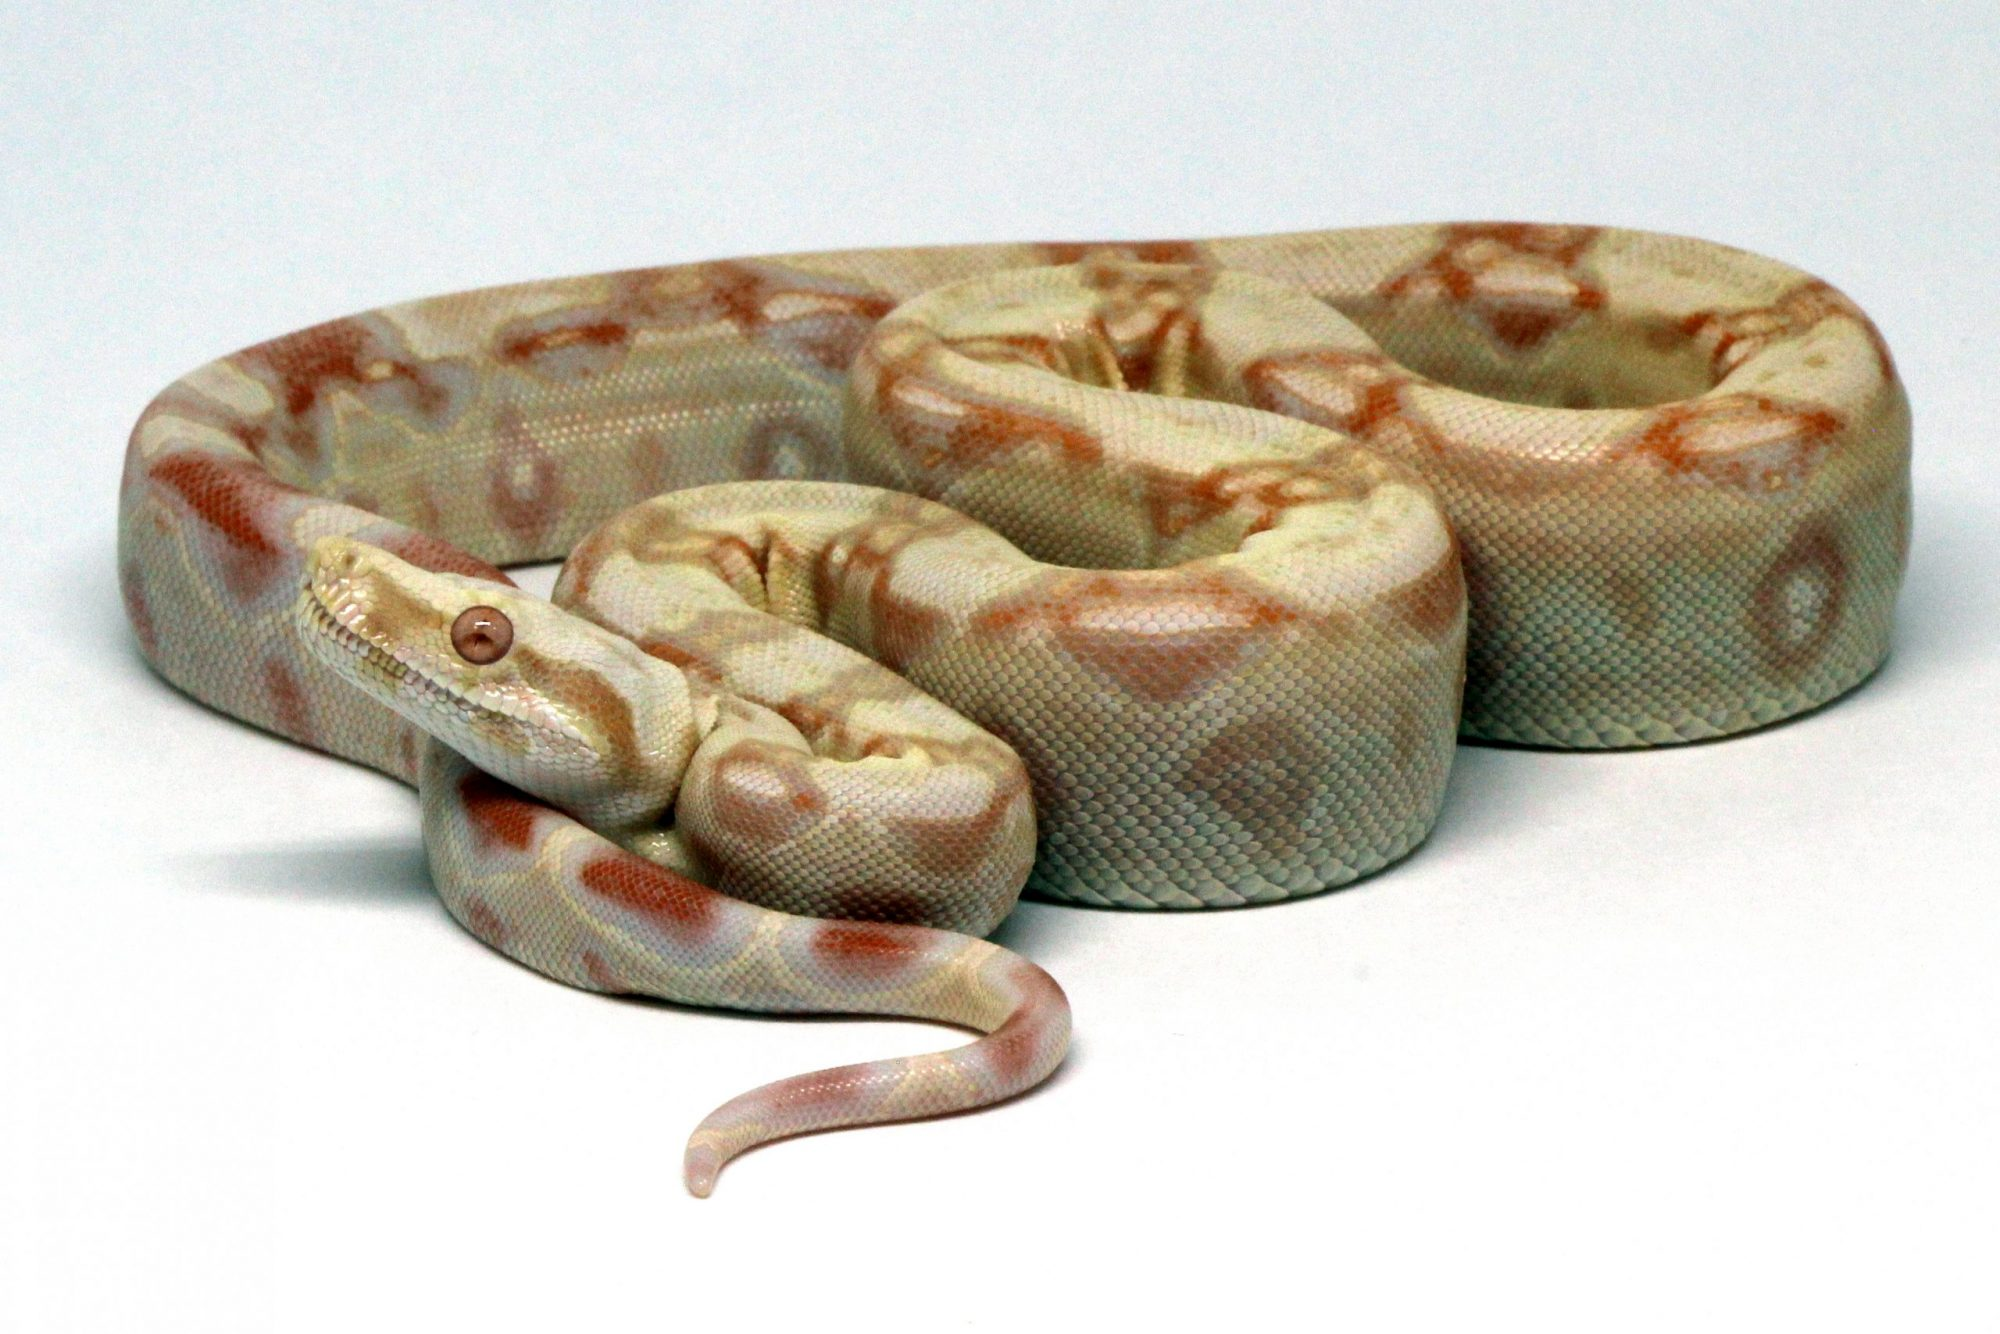 Kahl Albino Blood Red Dragon Morph Genetics Snake Boa Constrictor Reptile FOr Sale